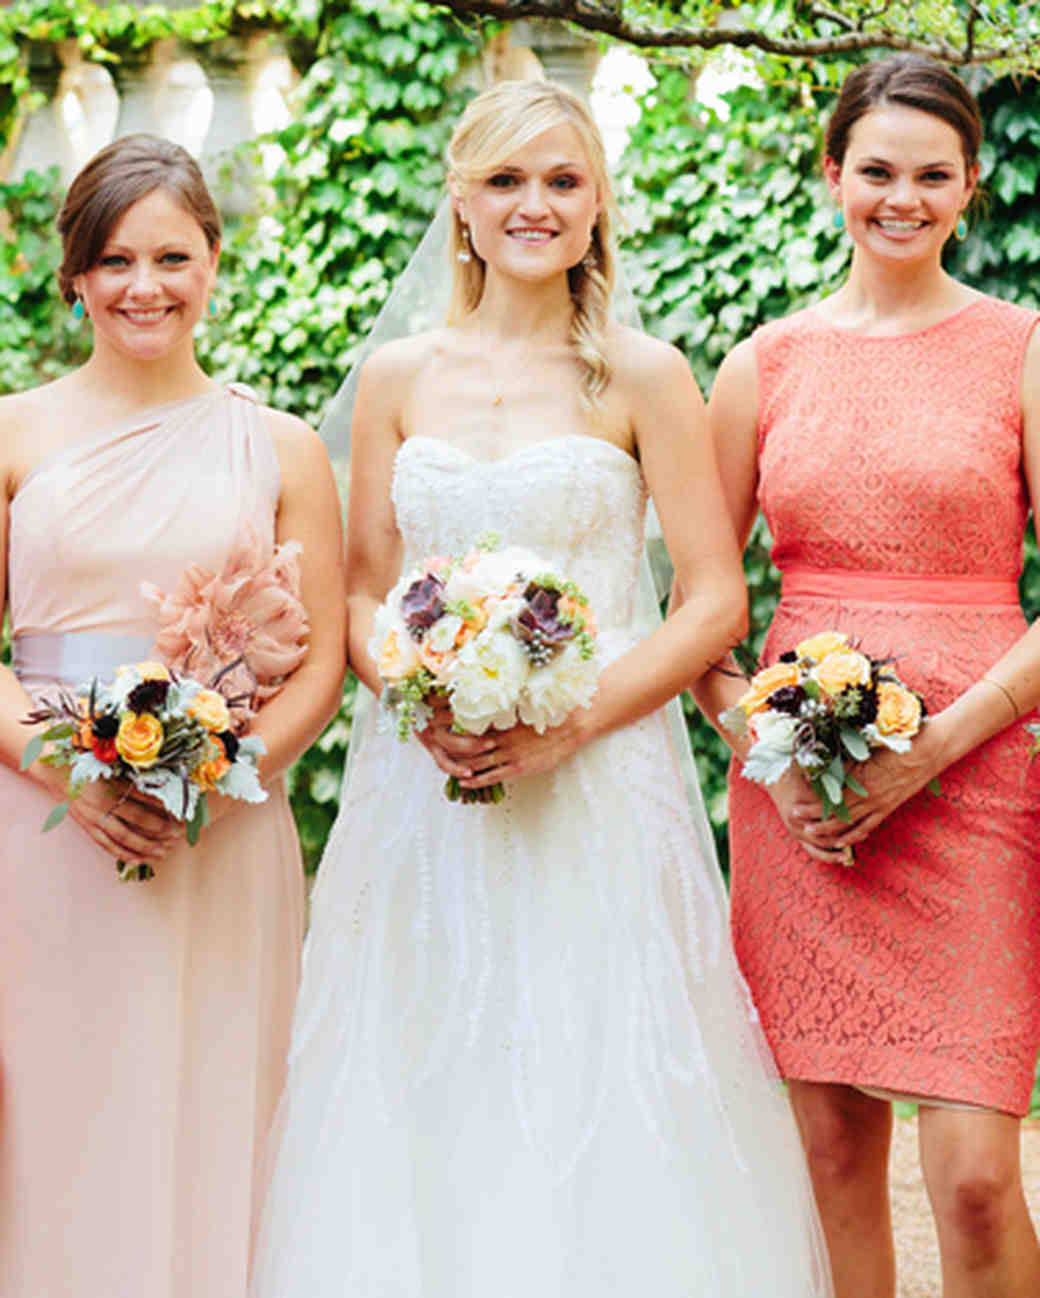 A romantic gray peach and coral wedding at an art museum in a romantic gray peach and coral wedding at an art museum in chicago martha stewart weddings ombrellifo Gallery